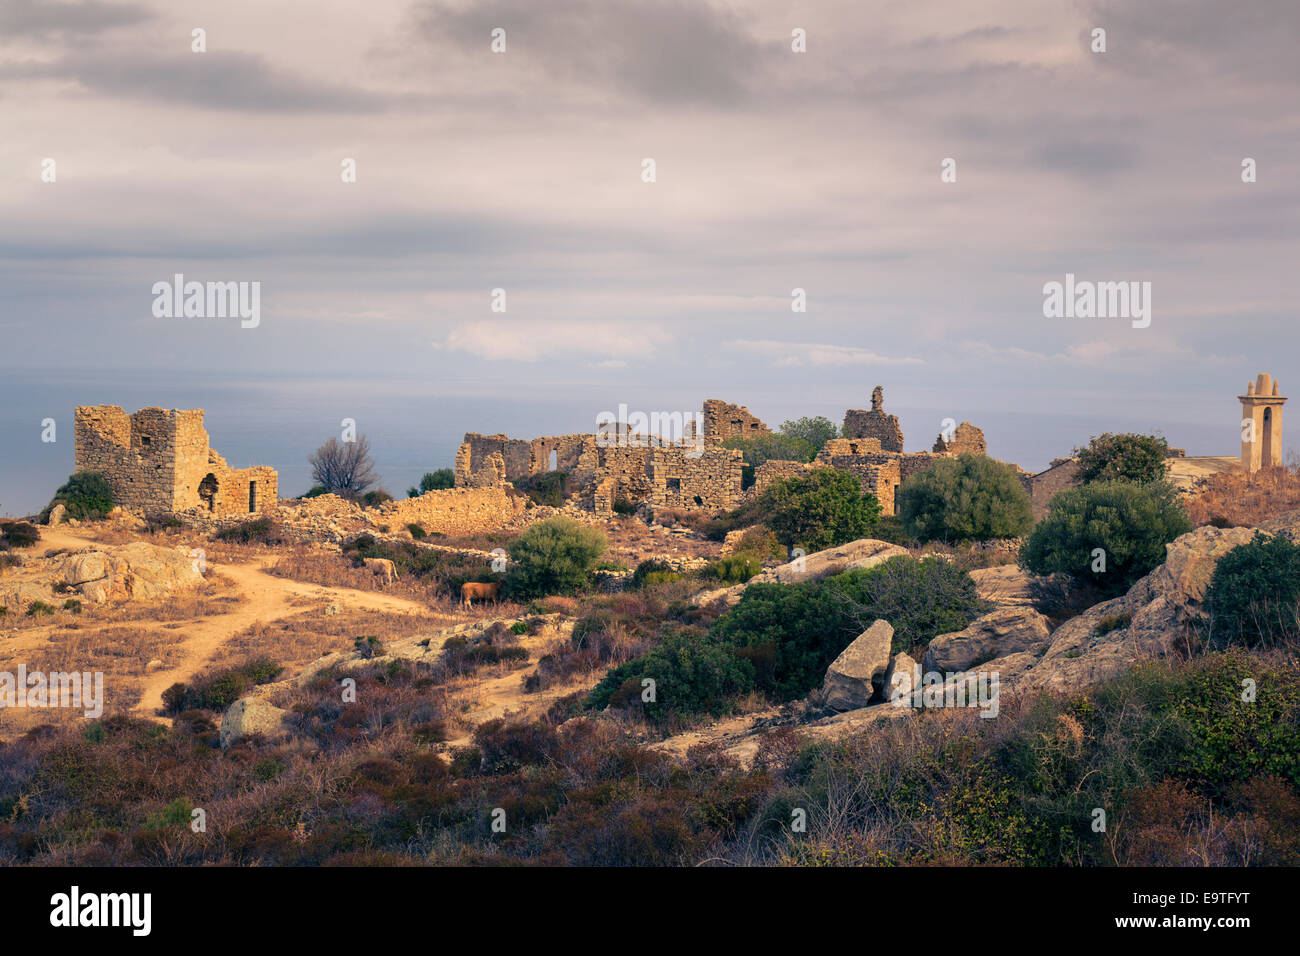 View on the ruins of Occi, Corsica - Stock Image